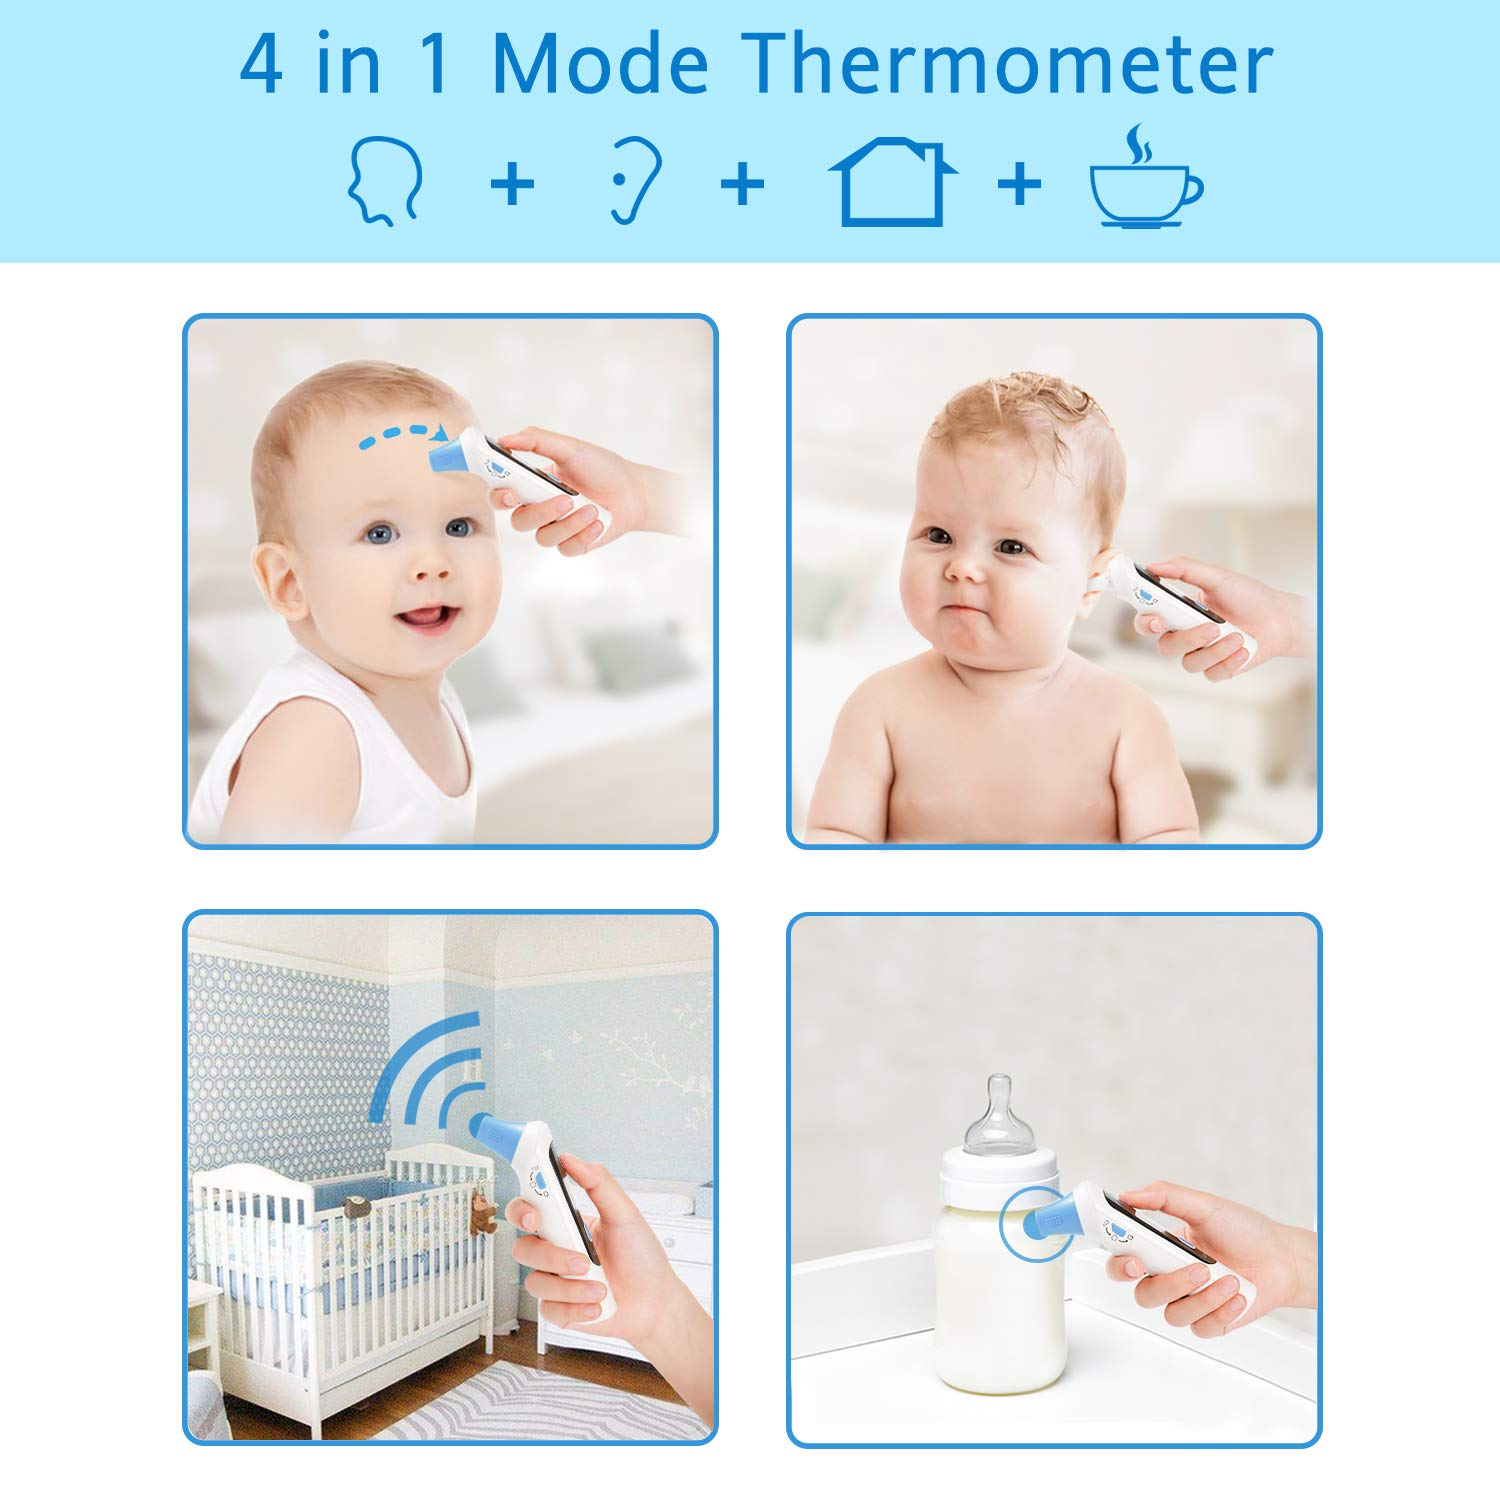 Cumbor Baby Thermometer -Forehead and Ear Thermometer for Fever -Medical Digital Infrared Thermometer for Kid, Infant, Toddler and Adult,hygienic Lens Filters Included,FDA Approved by Cumbor (Image #3)